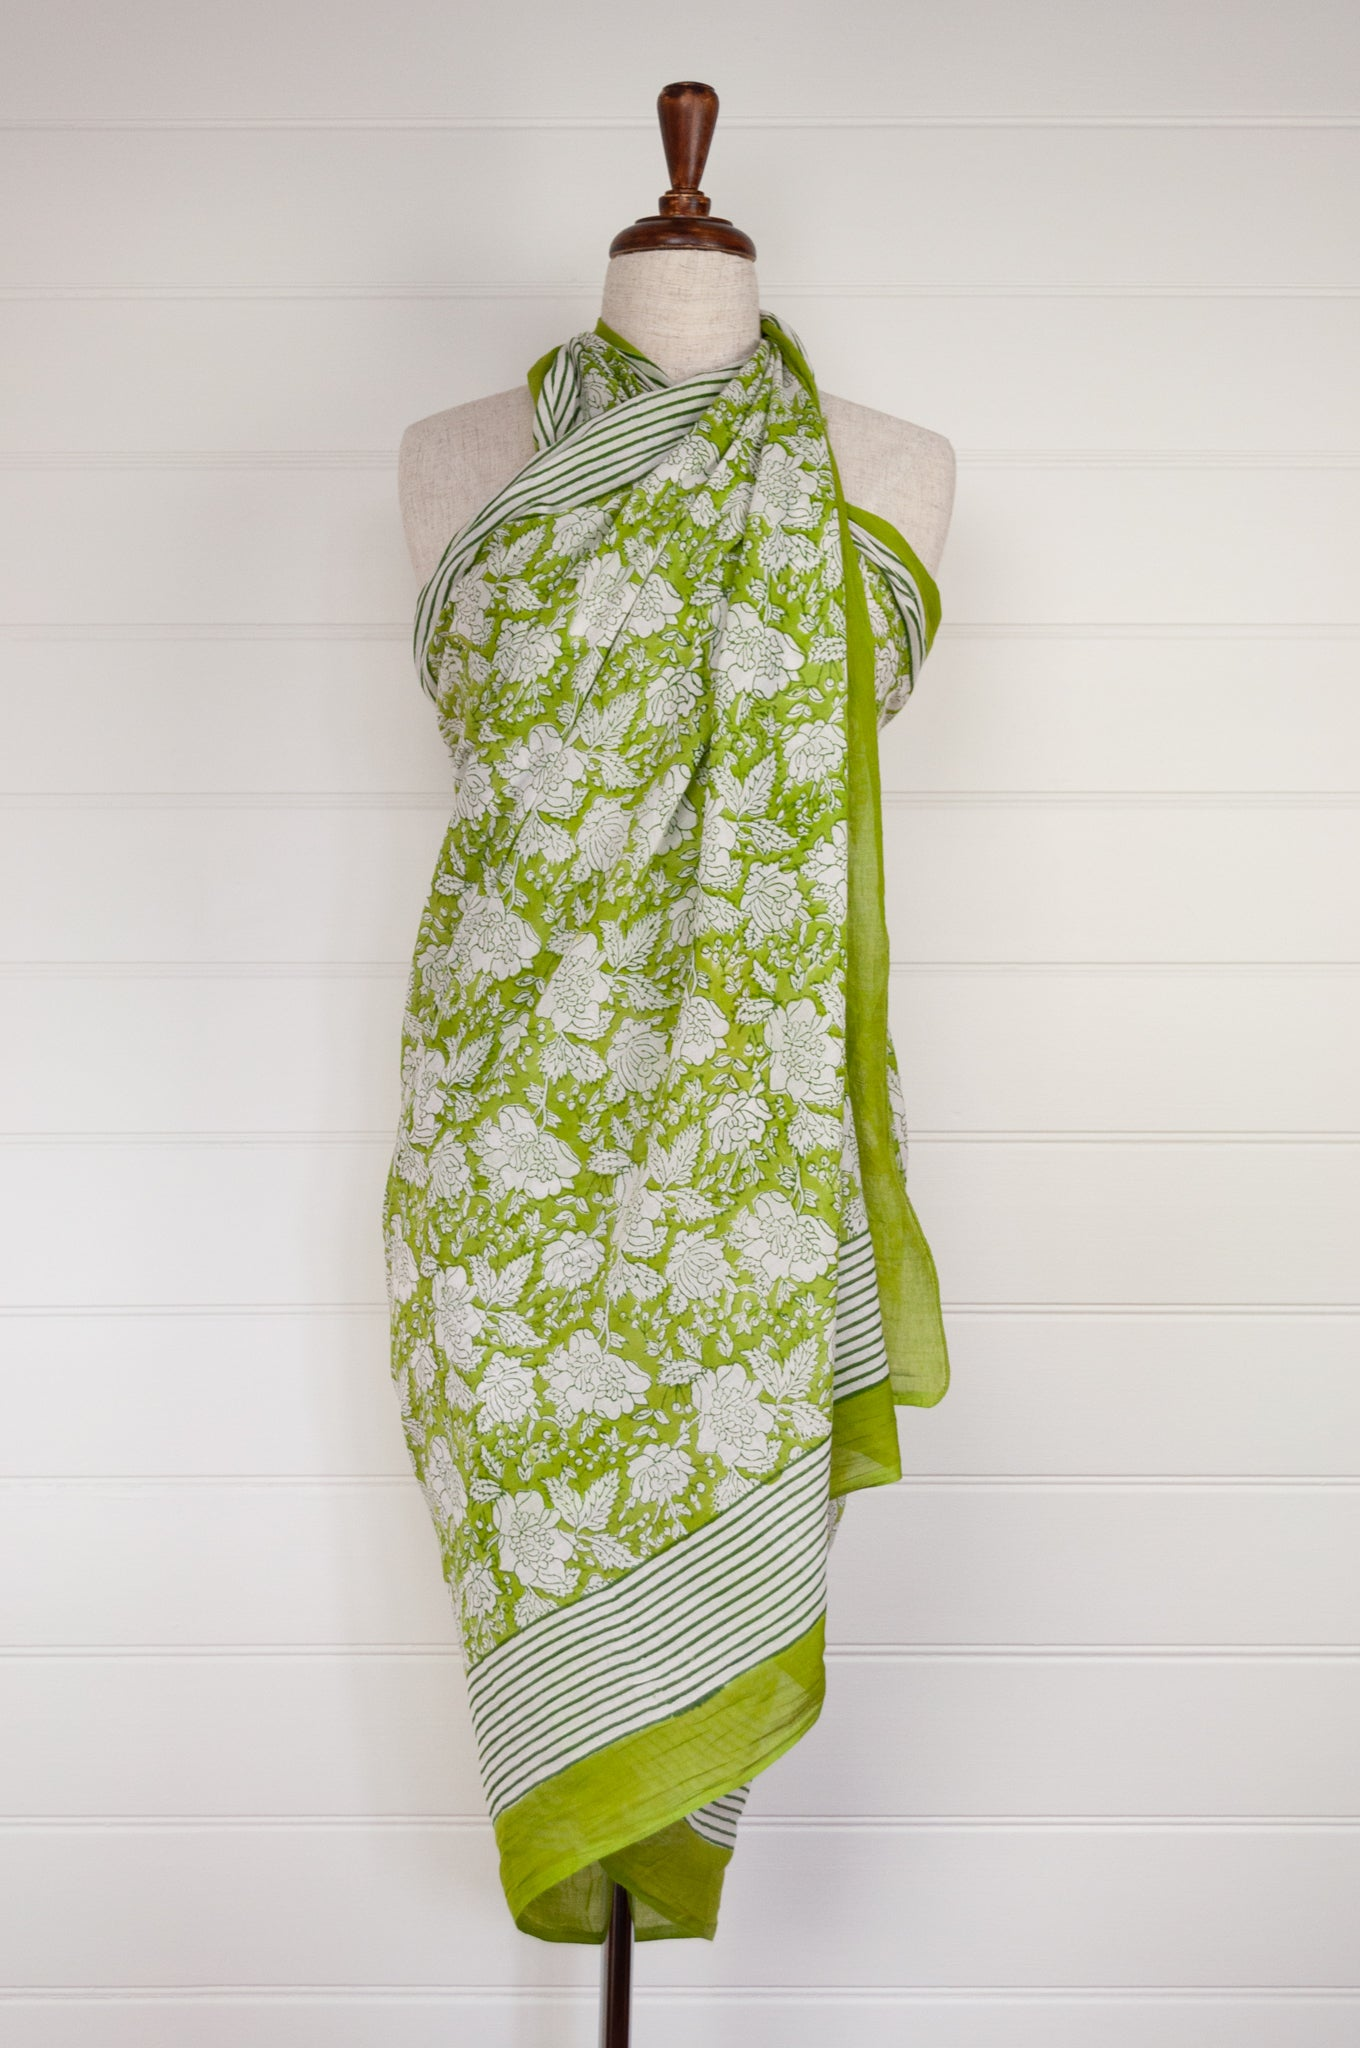 Cotton voile sarong, block printed by hand. Fresh white flower on a lime green base.